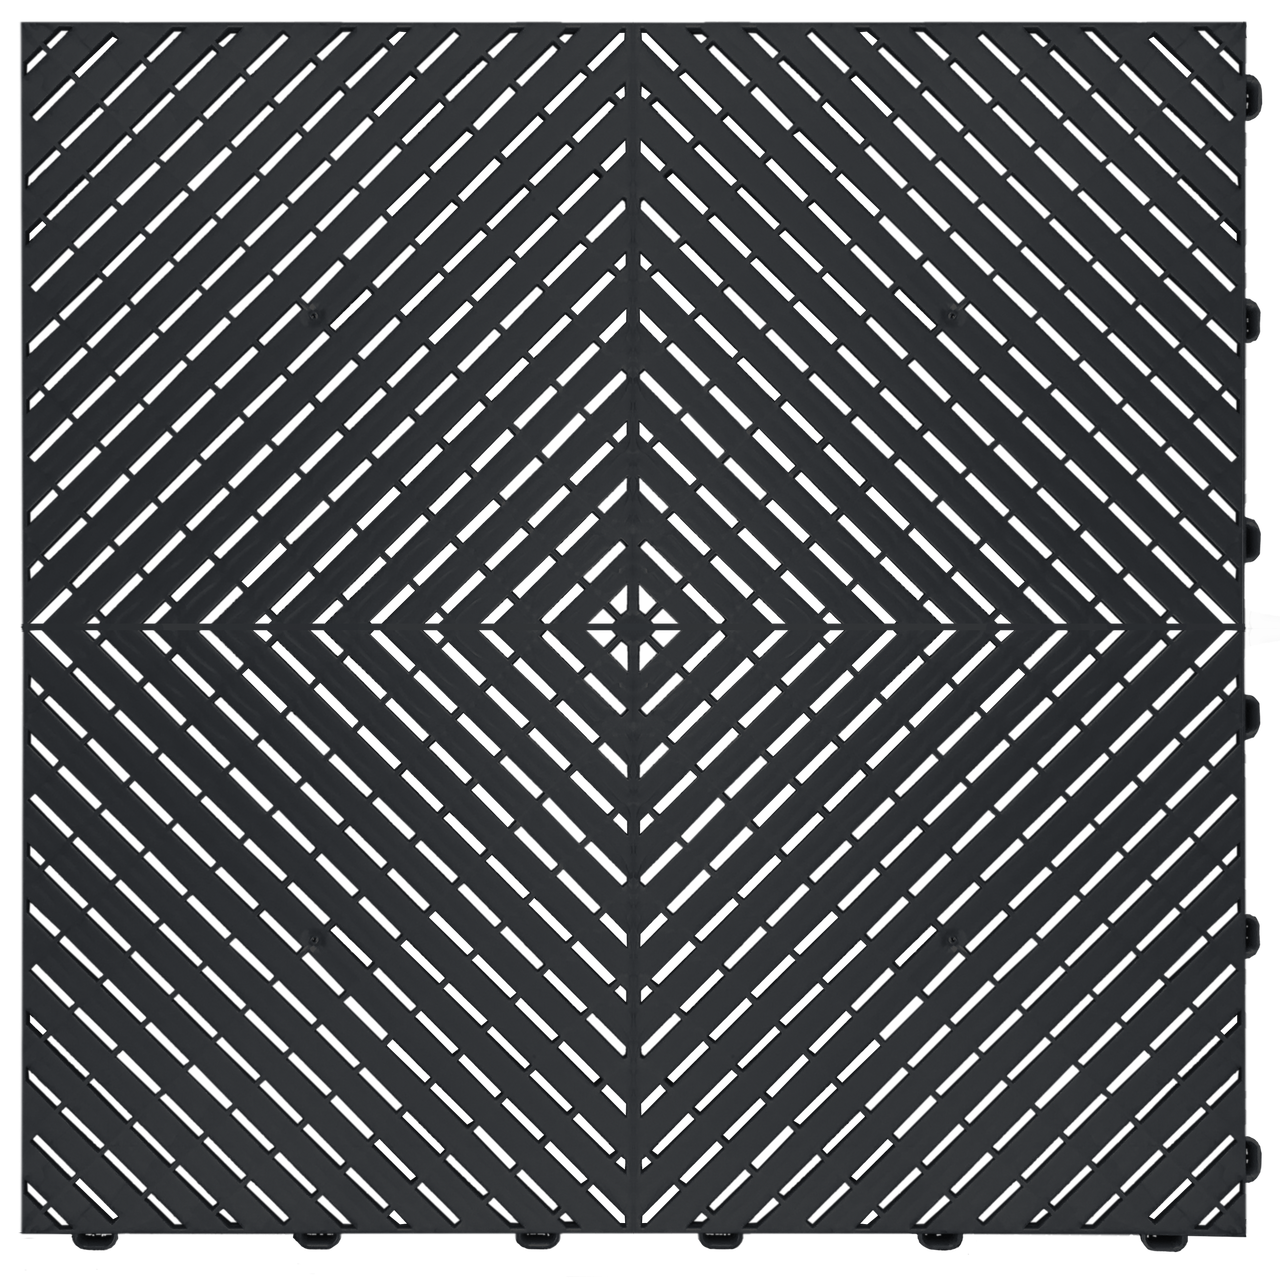 """Jet Black"" RibTrax (RT) Smooth by SwissTrax - SALE PRICE ONLY $3.96 PER SQ FT Tile Size: 15.75"" x 15.75"" x .75 (1 Tile = 1.72 sq ft)"